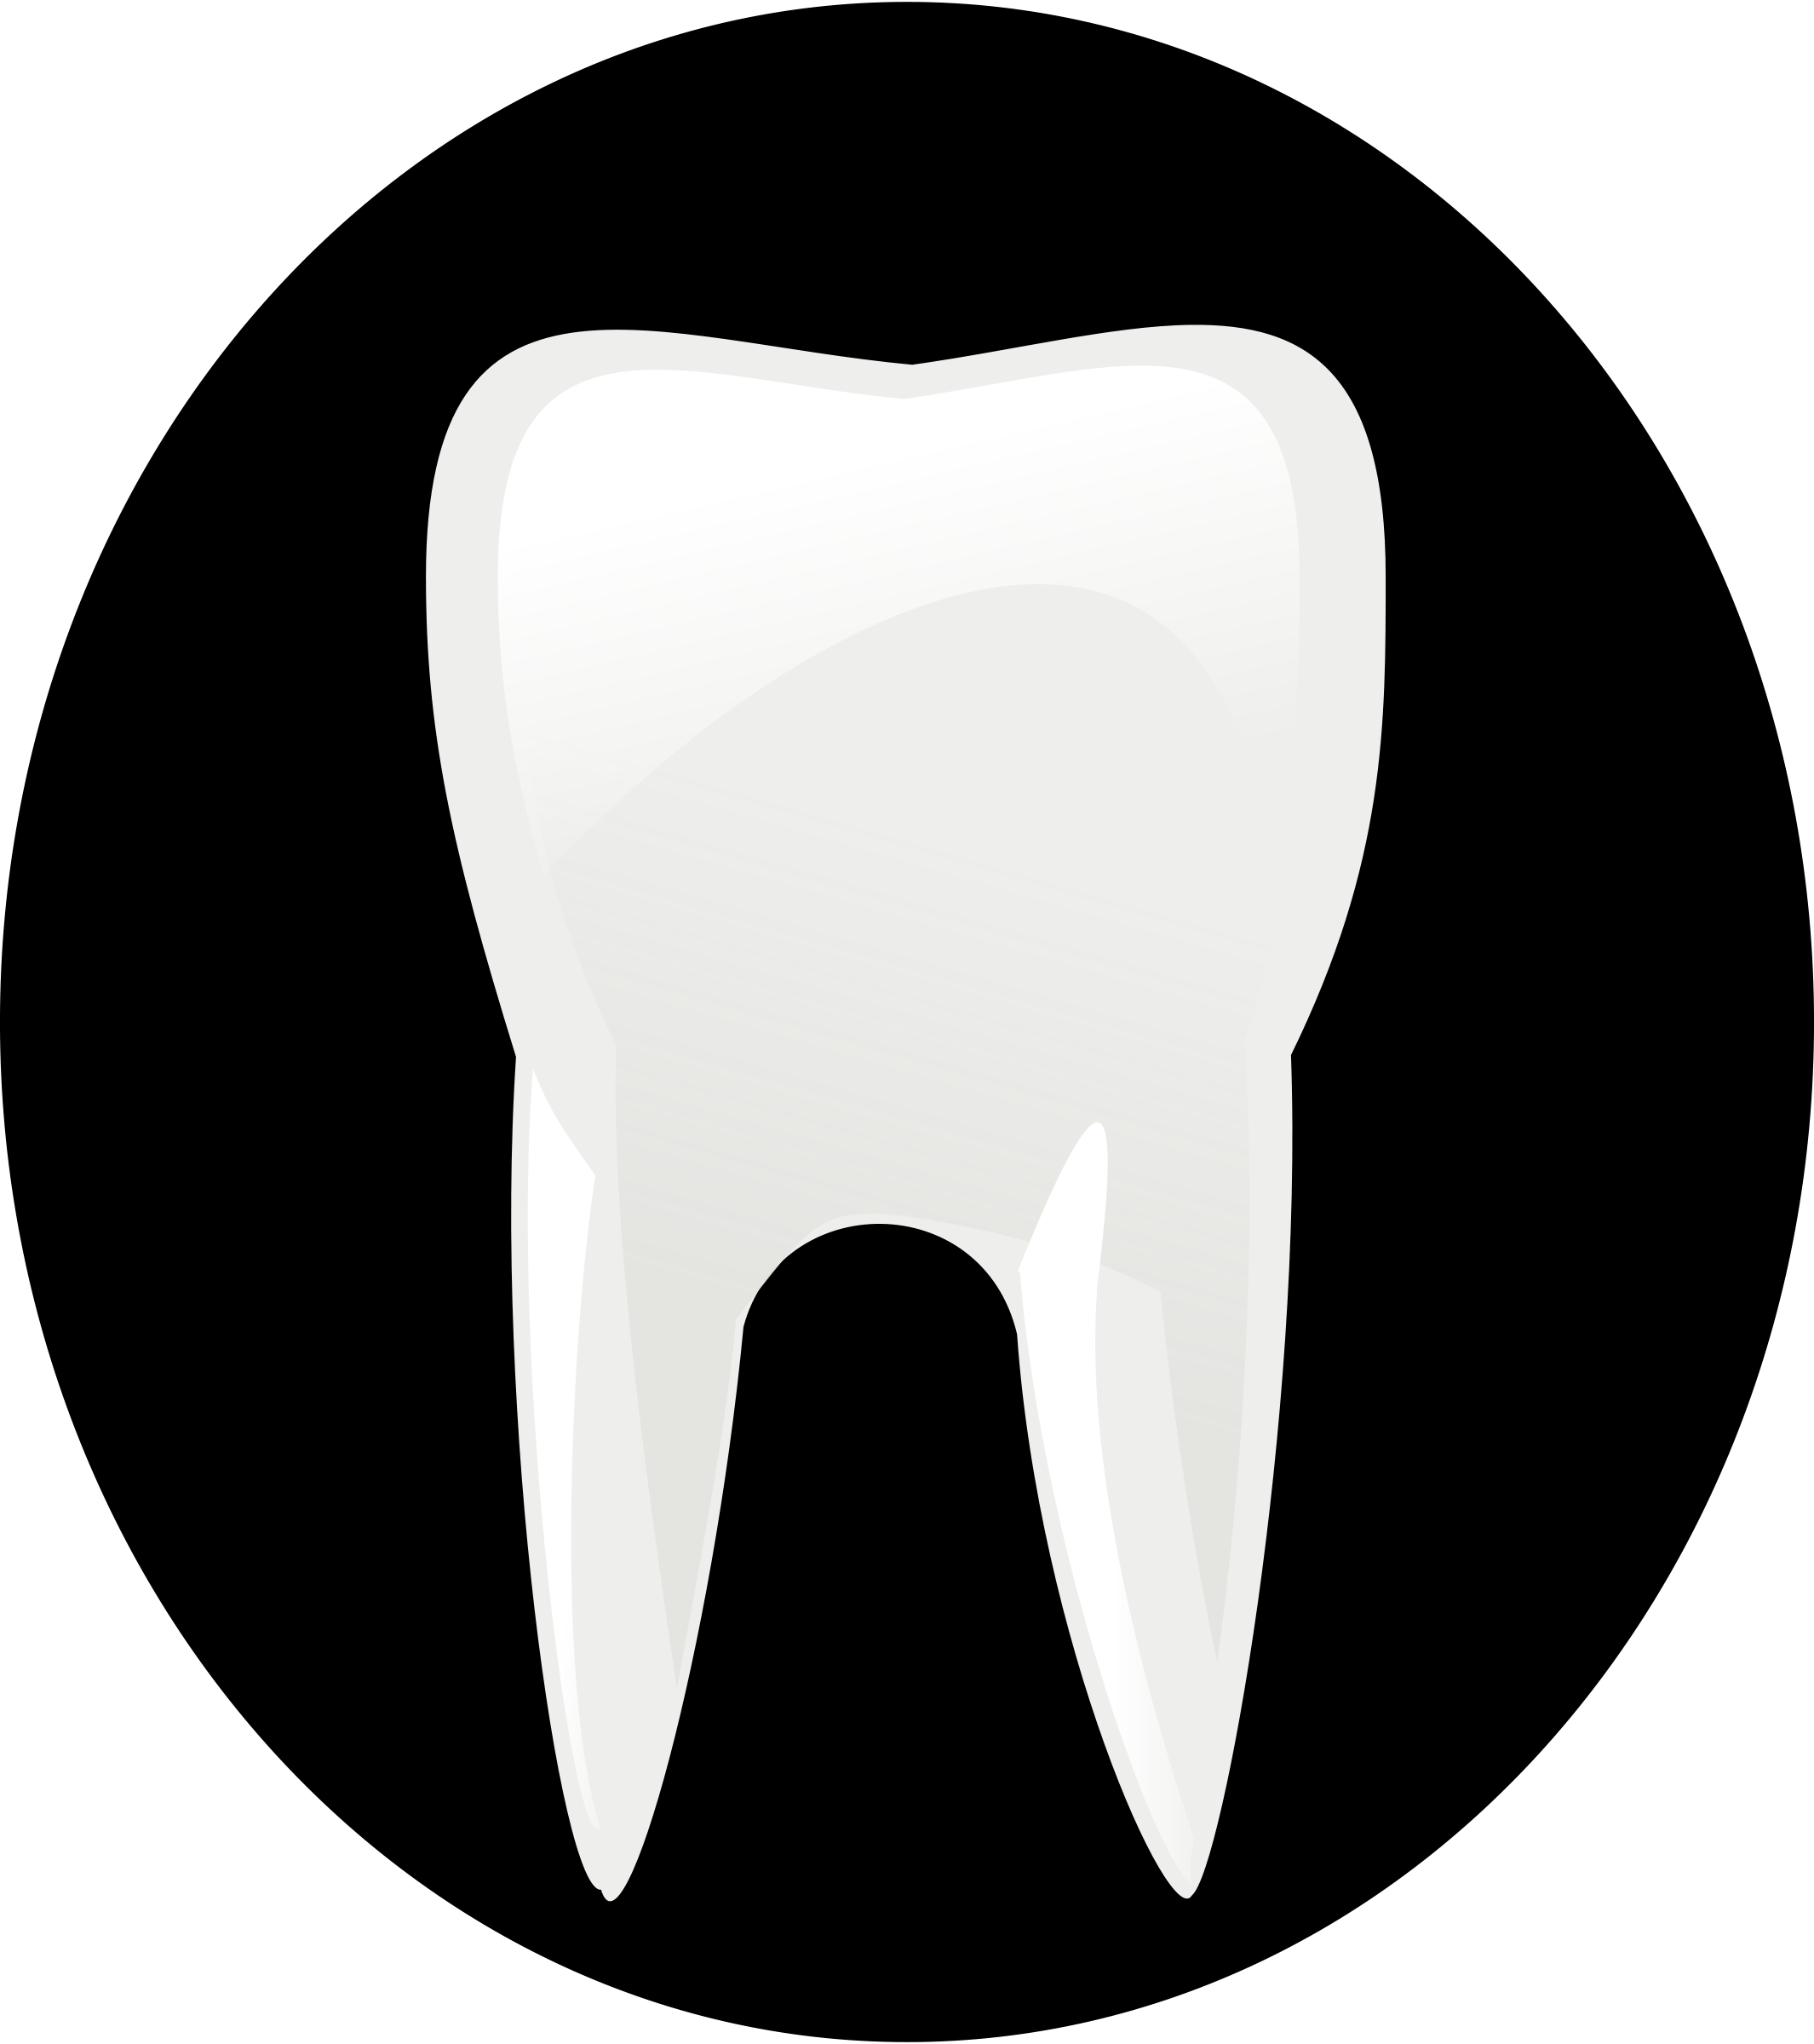 image free download Dental clipart. Tooth clip art free